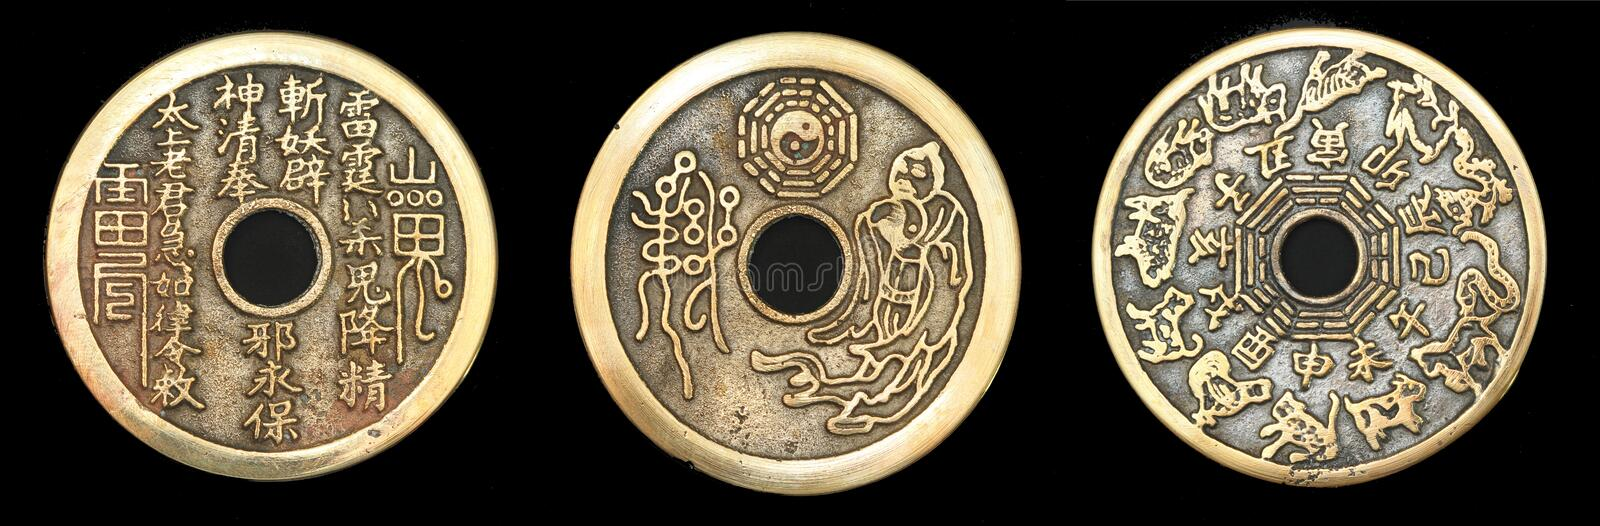 Taoist coins. Bagua and Hexagrams on Chinese Taoist Coins which gives luck and protection stock image